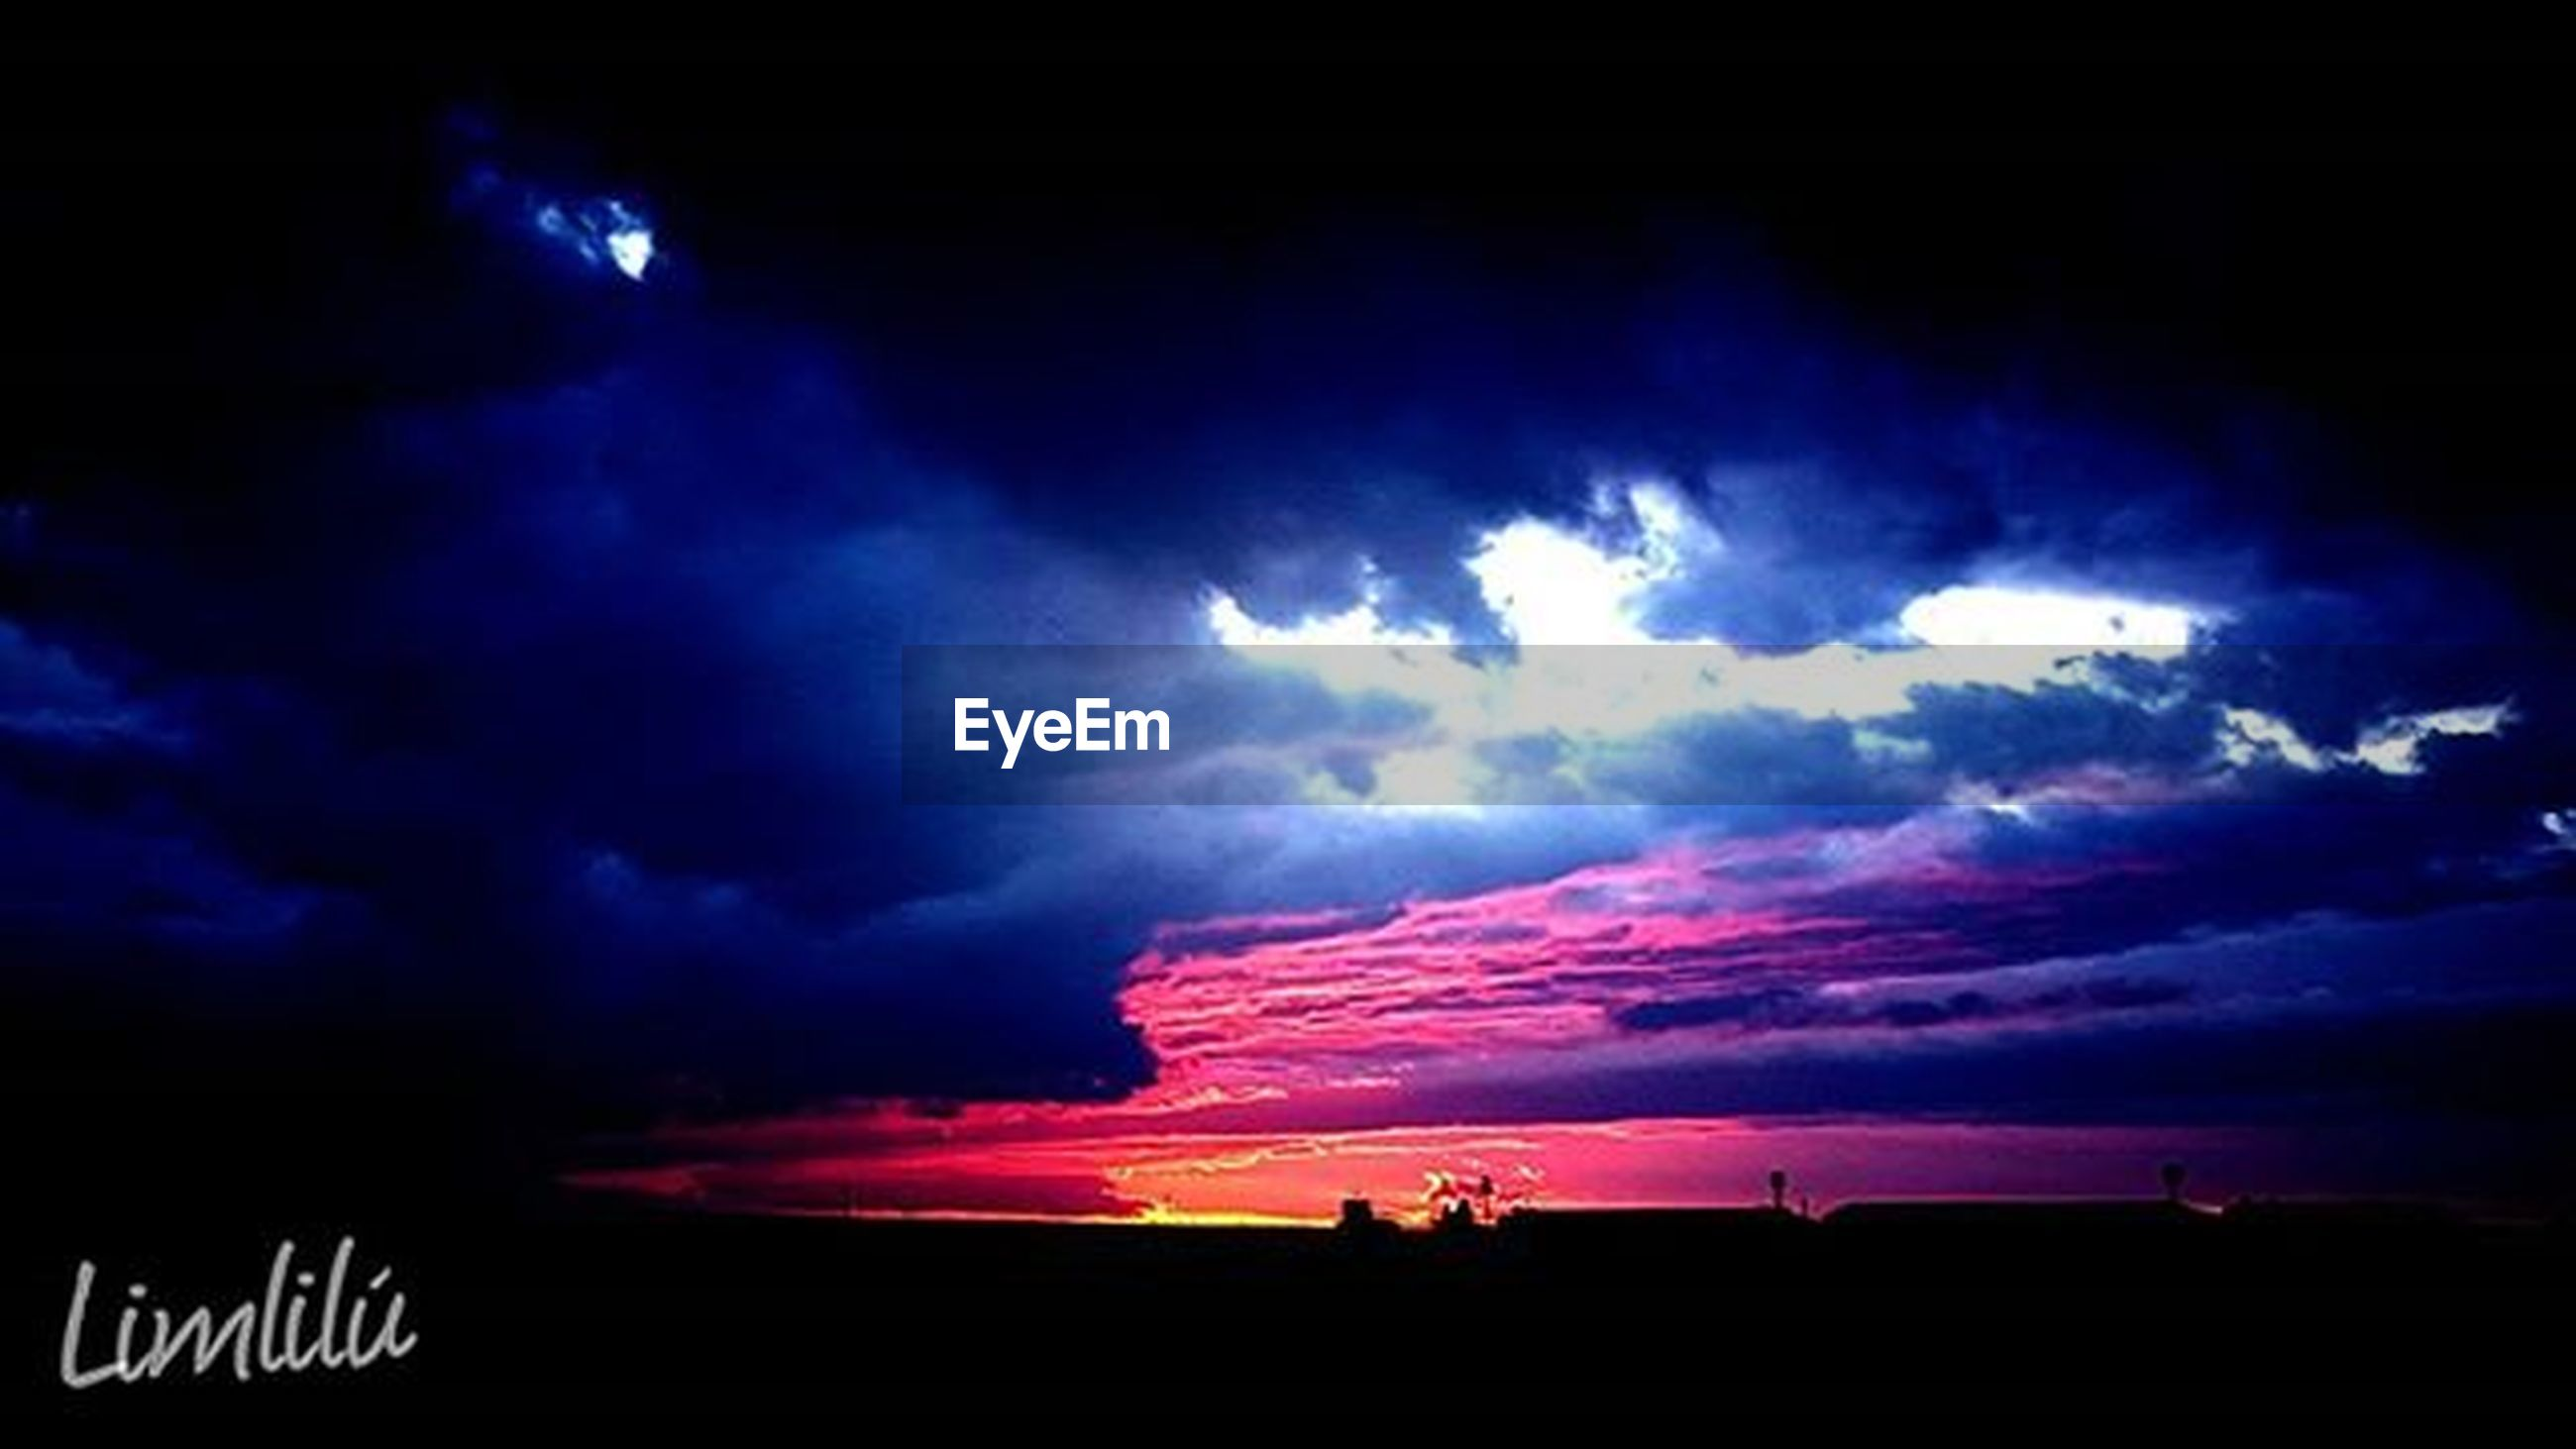 sky, silhouette, cloud - sky, cloudy, dramatic sky, scenics, beauty in nature, weather, storm cloud, sunset, overcast, tranquil scene, tranquility, dusk, atmospheric mood, low angle view, nature, cloud, idyllic, cloudscape